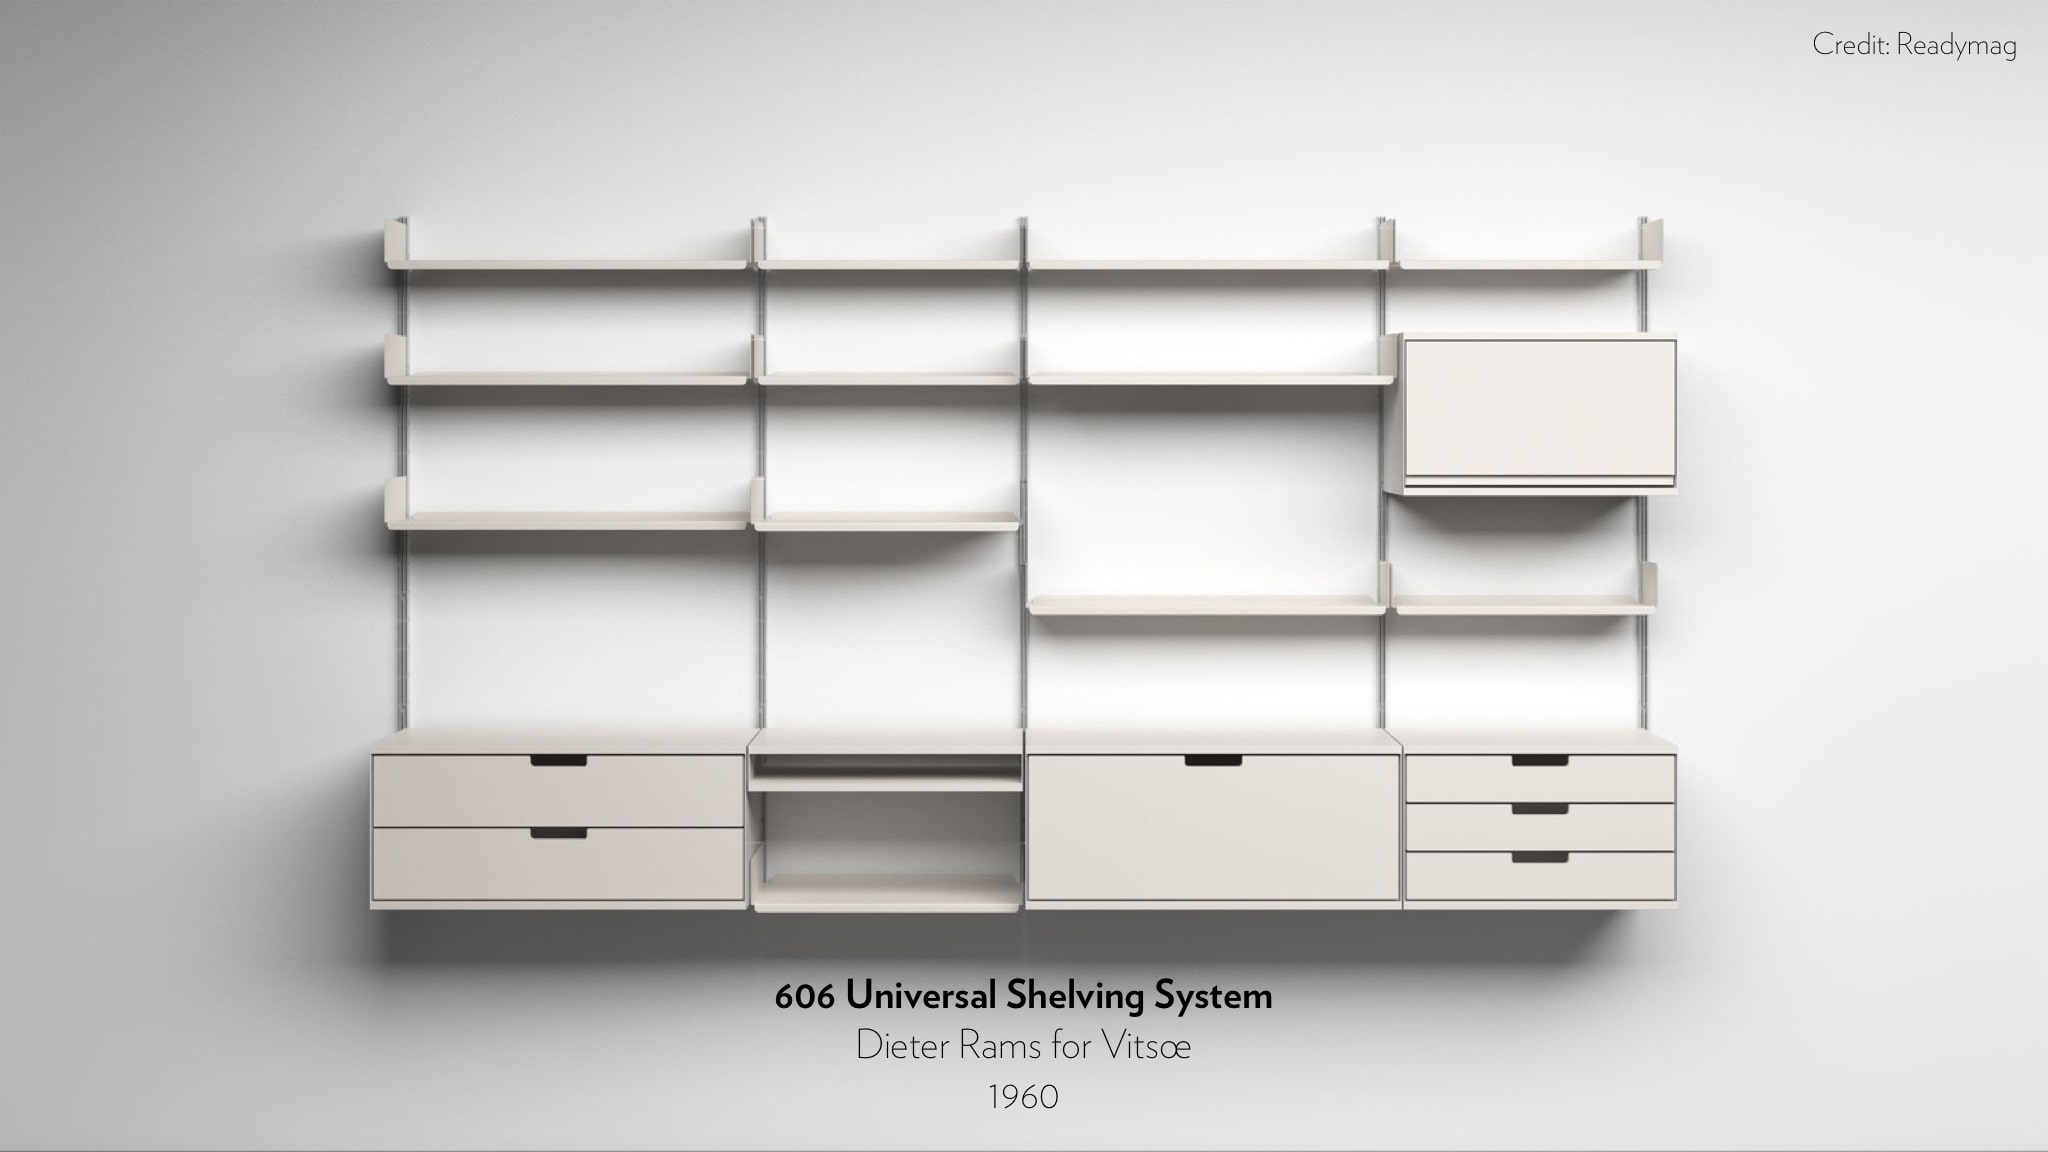 606 Universal Shelving System designed by Dieter Rams for Vitsoe in 1960.